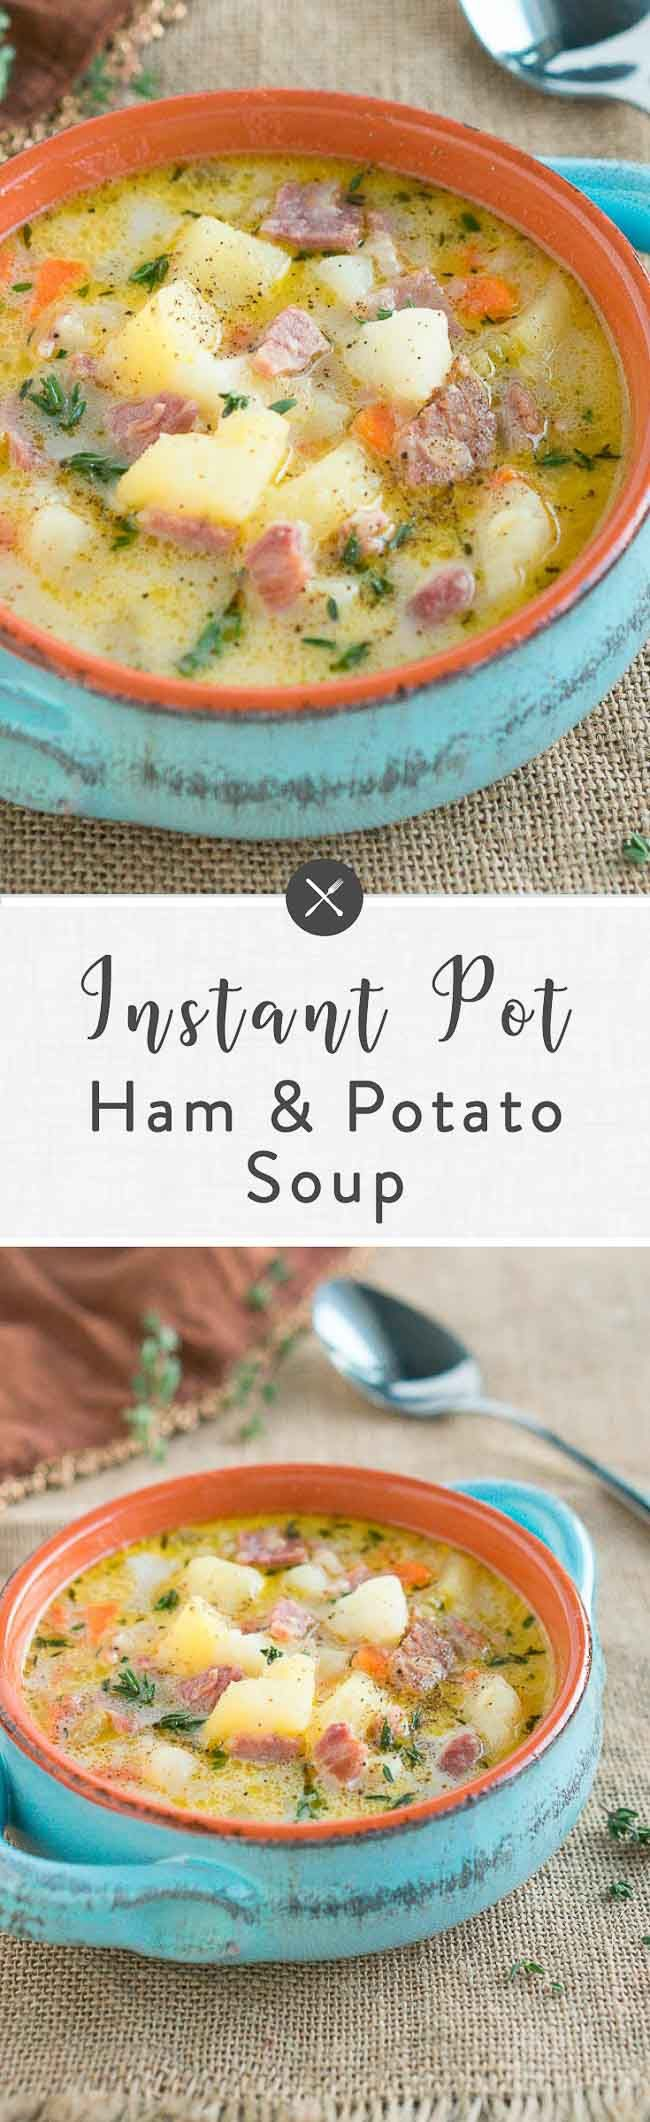 Delicious and hearty Instant Pot Ham and Potato Soup made with leftover ham and ham bone and russet potatoes. Made in the Instant Pot for less than 30 minutes. Perfect for cold weather! #soup #winter #ham #Easter #comfortfood via @NeliHoward